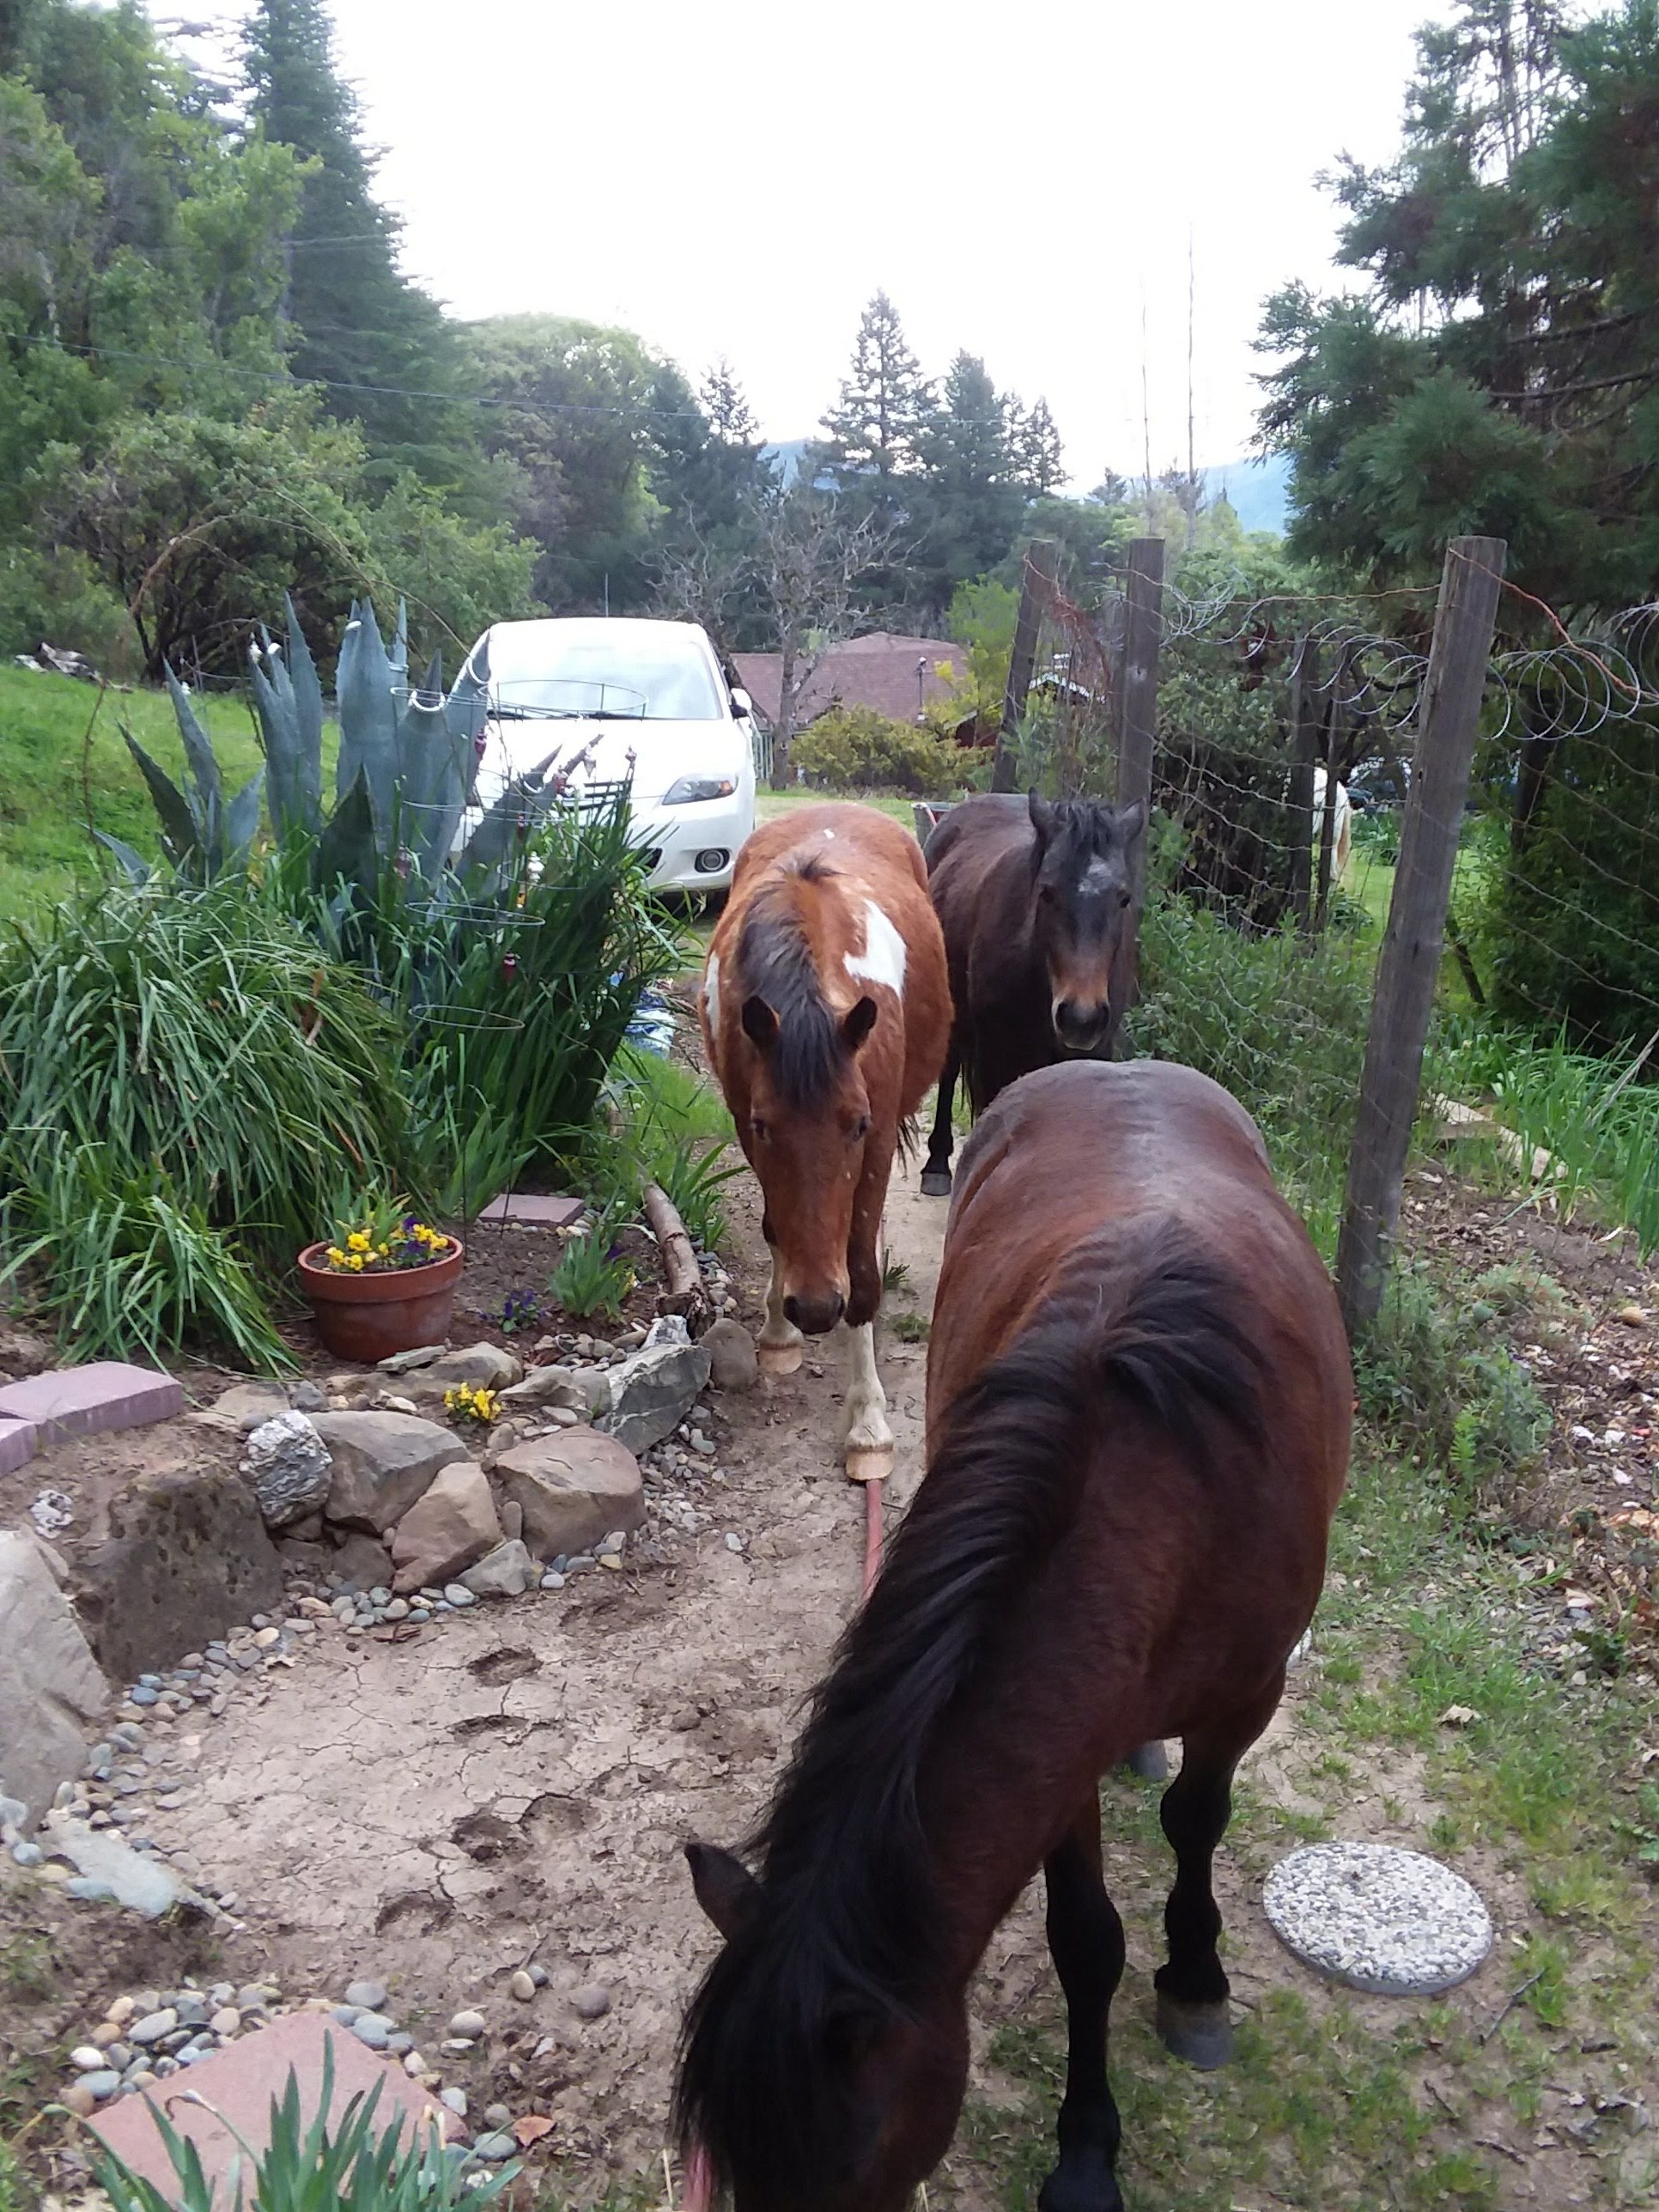 Wild Horses on the Porch